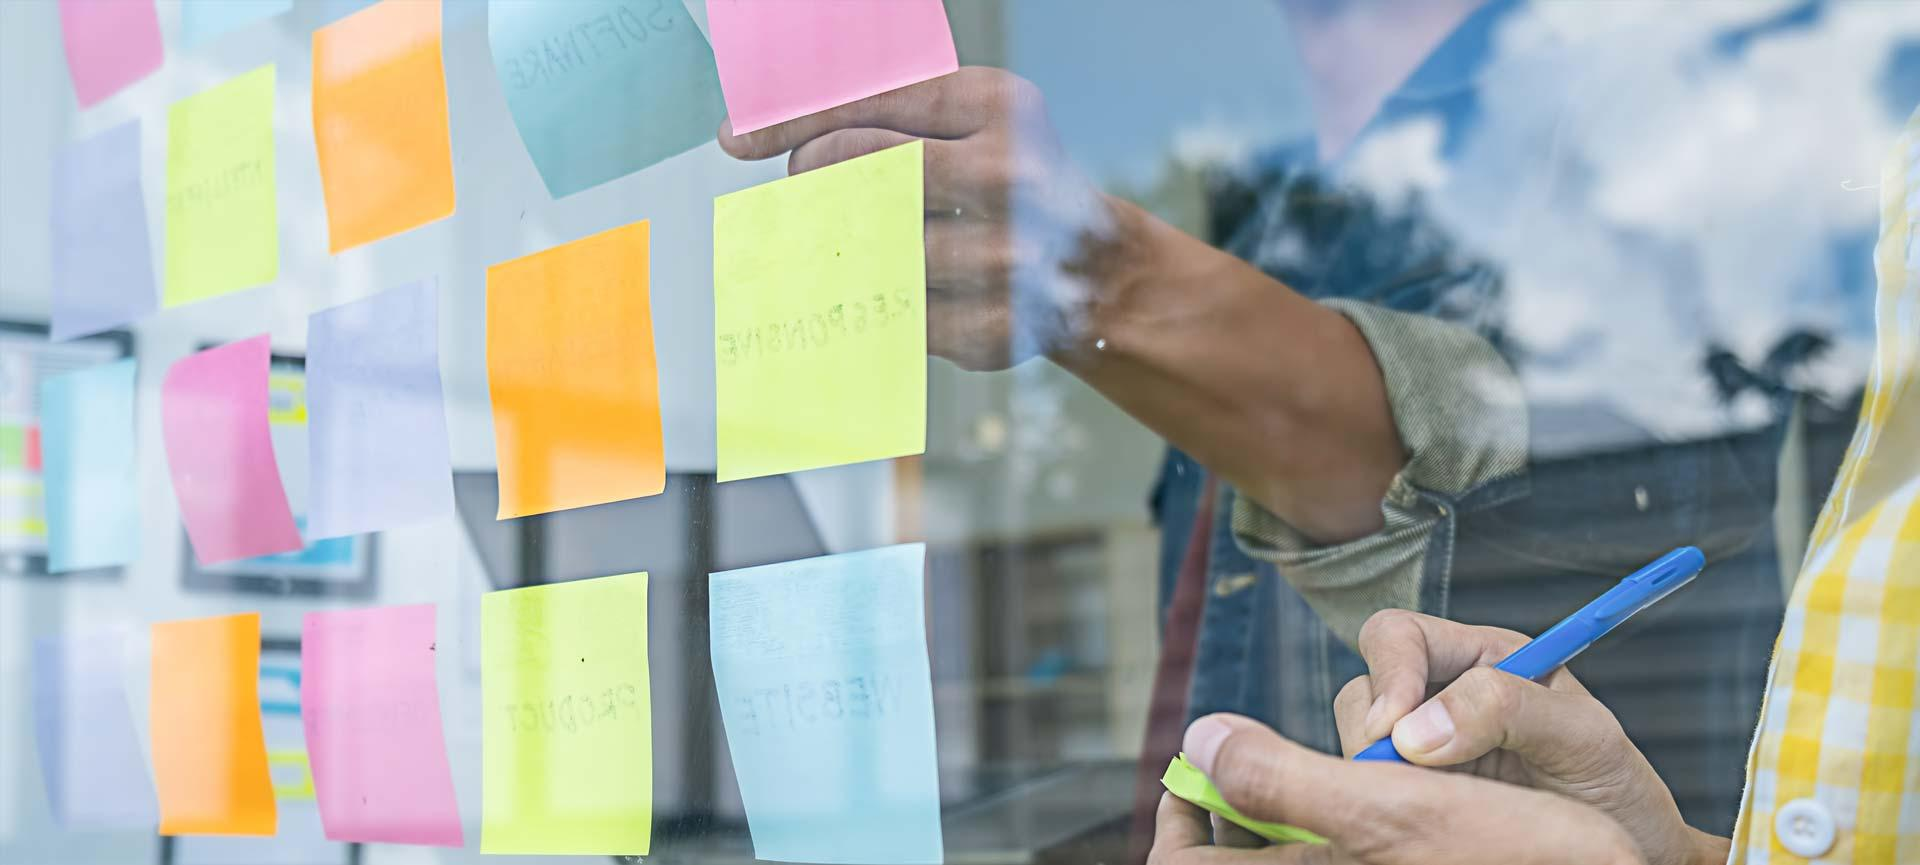 People using post-it notes during a design session